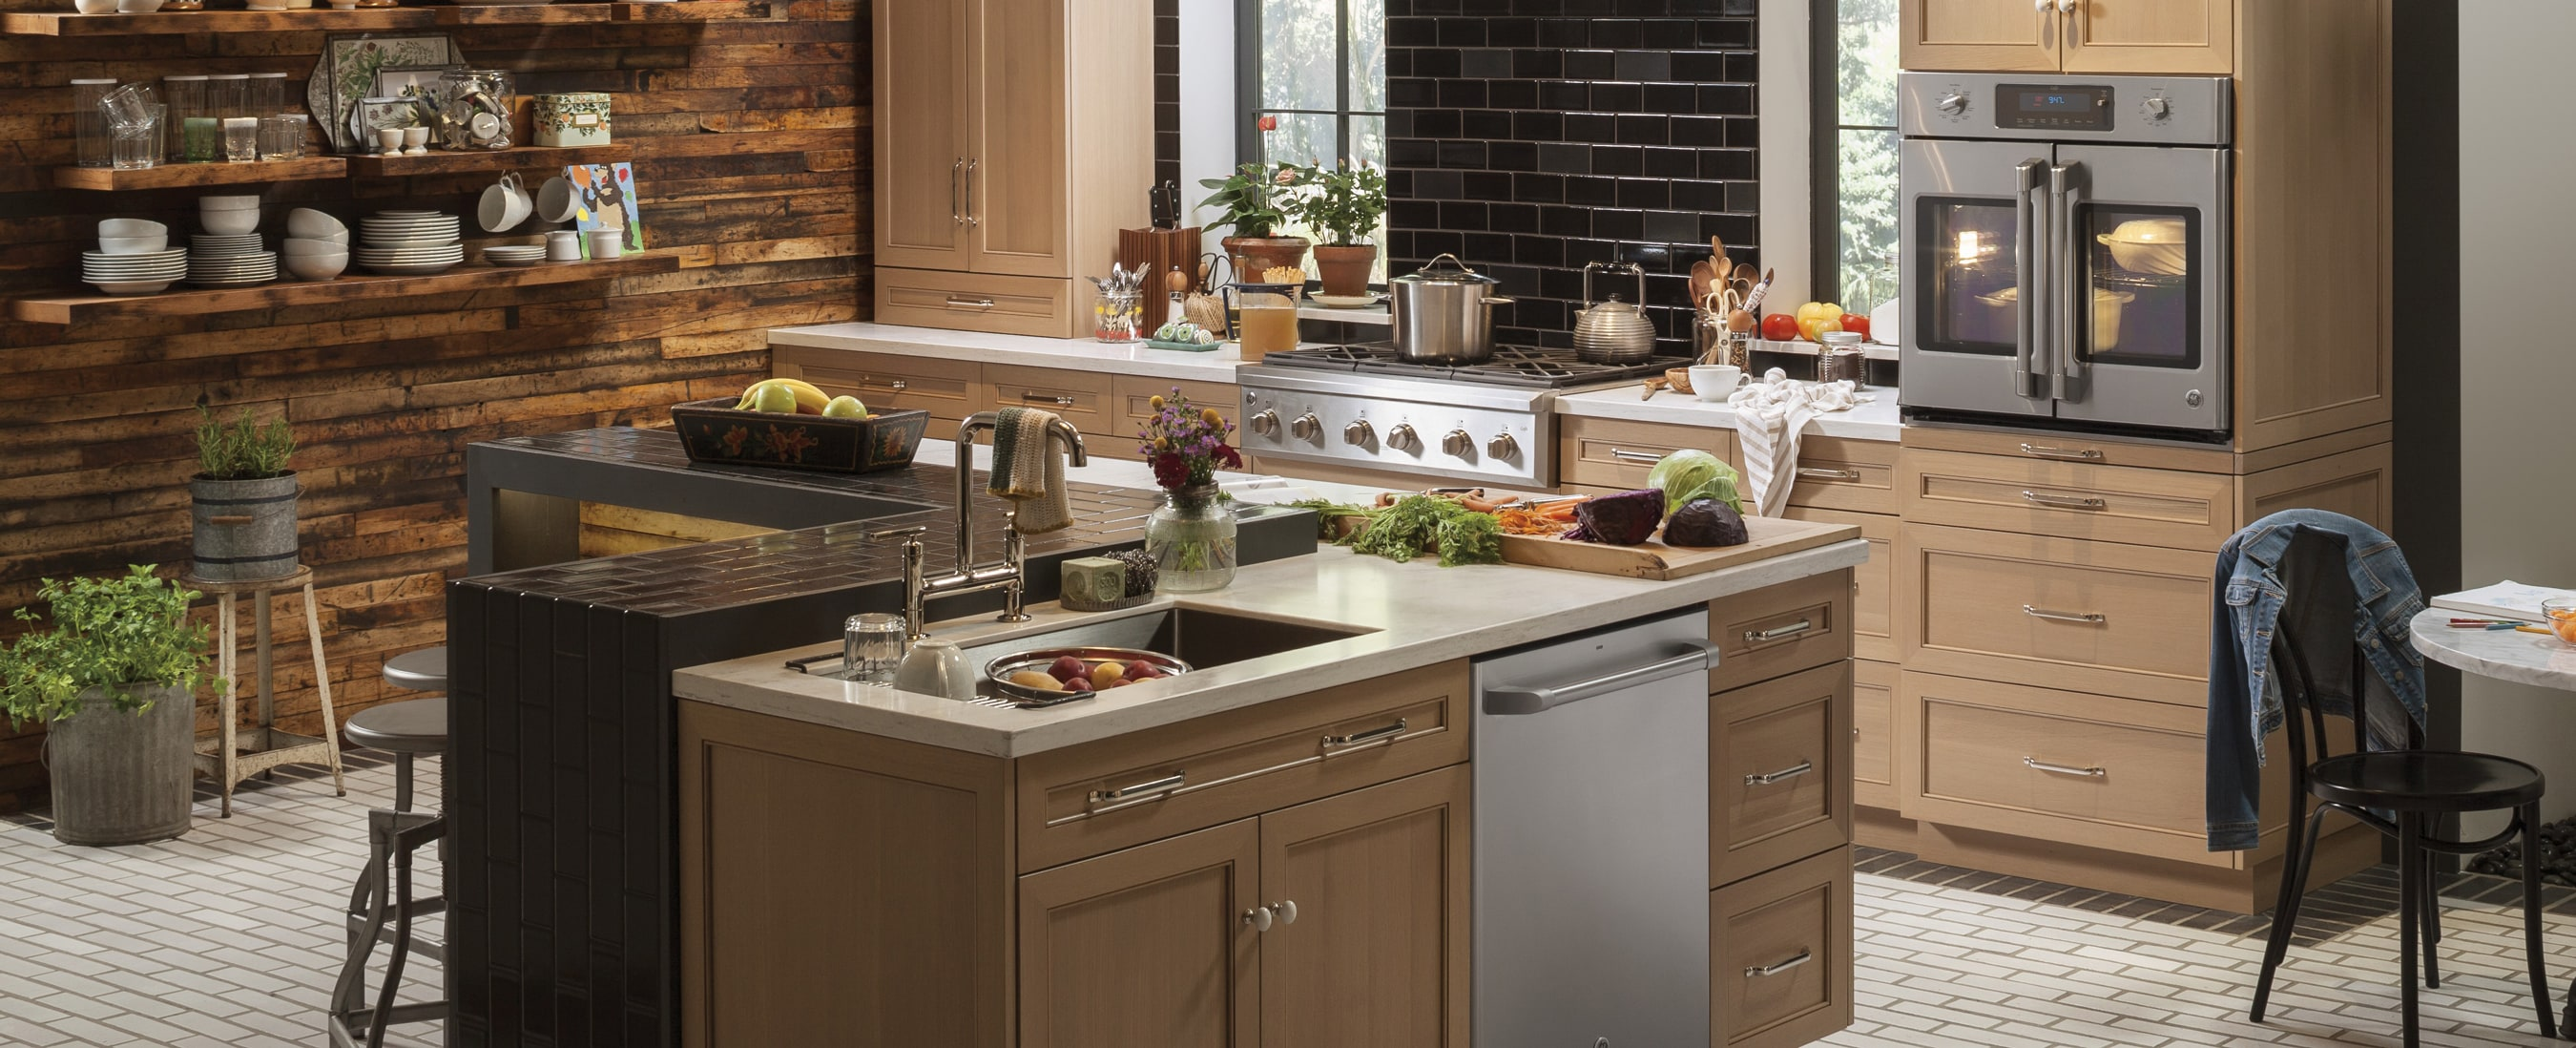 Arizona Discount Appliance Huge Selection Of Used And